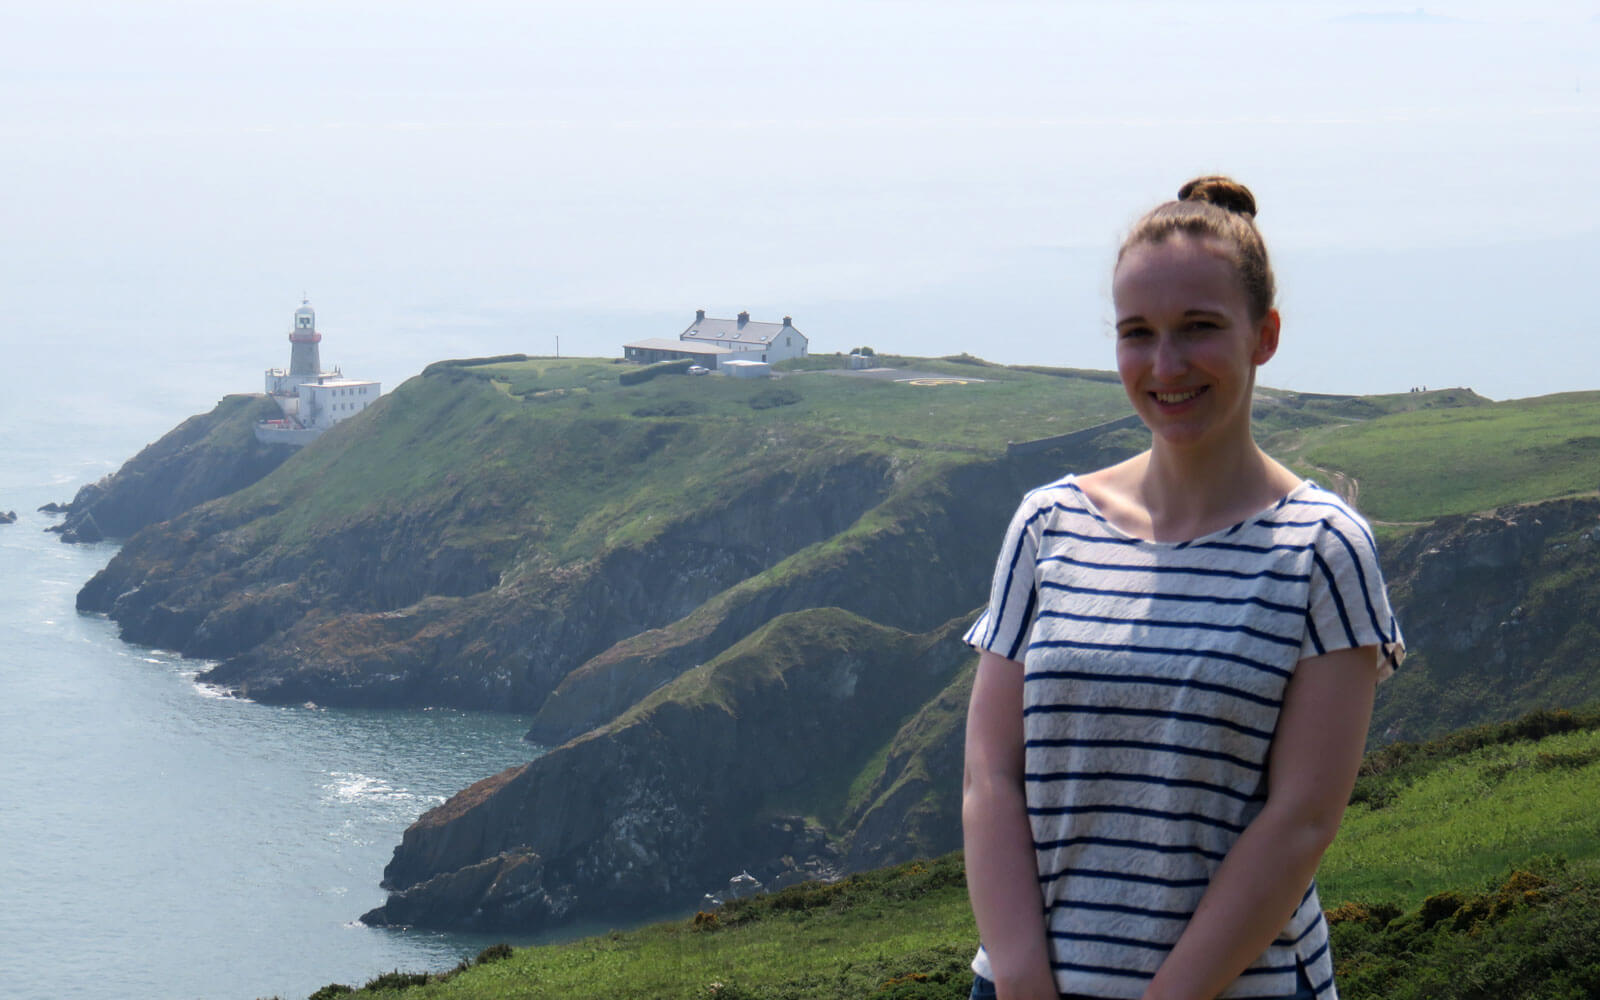 Maren am Baily Lighthouse auf Howth Head